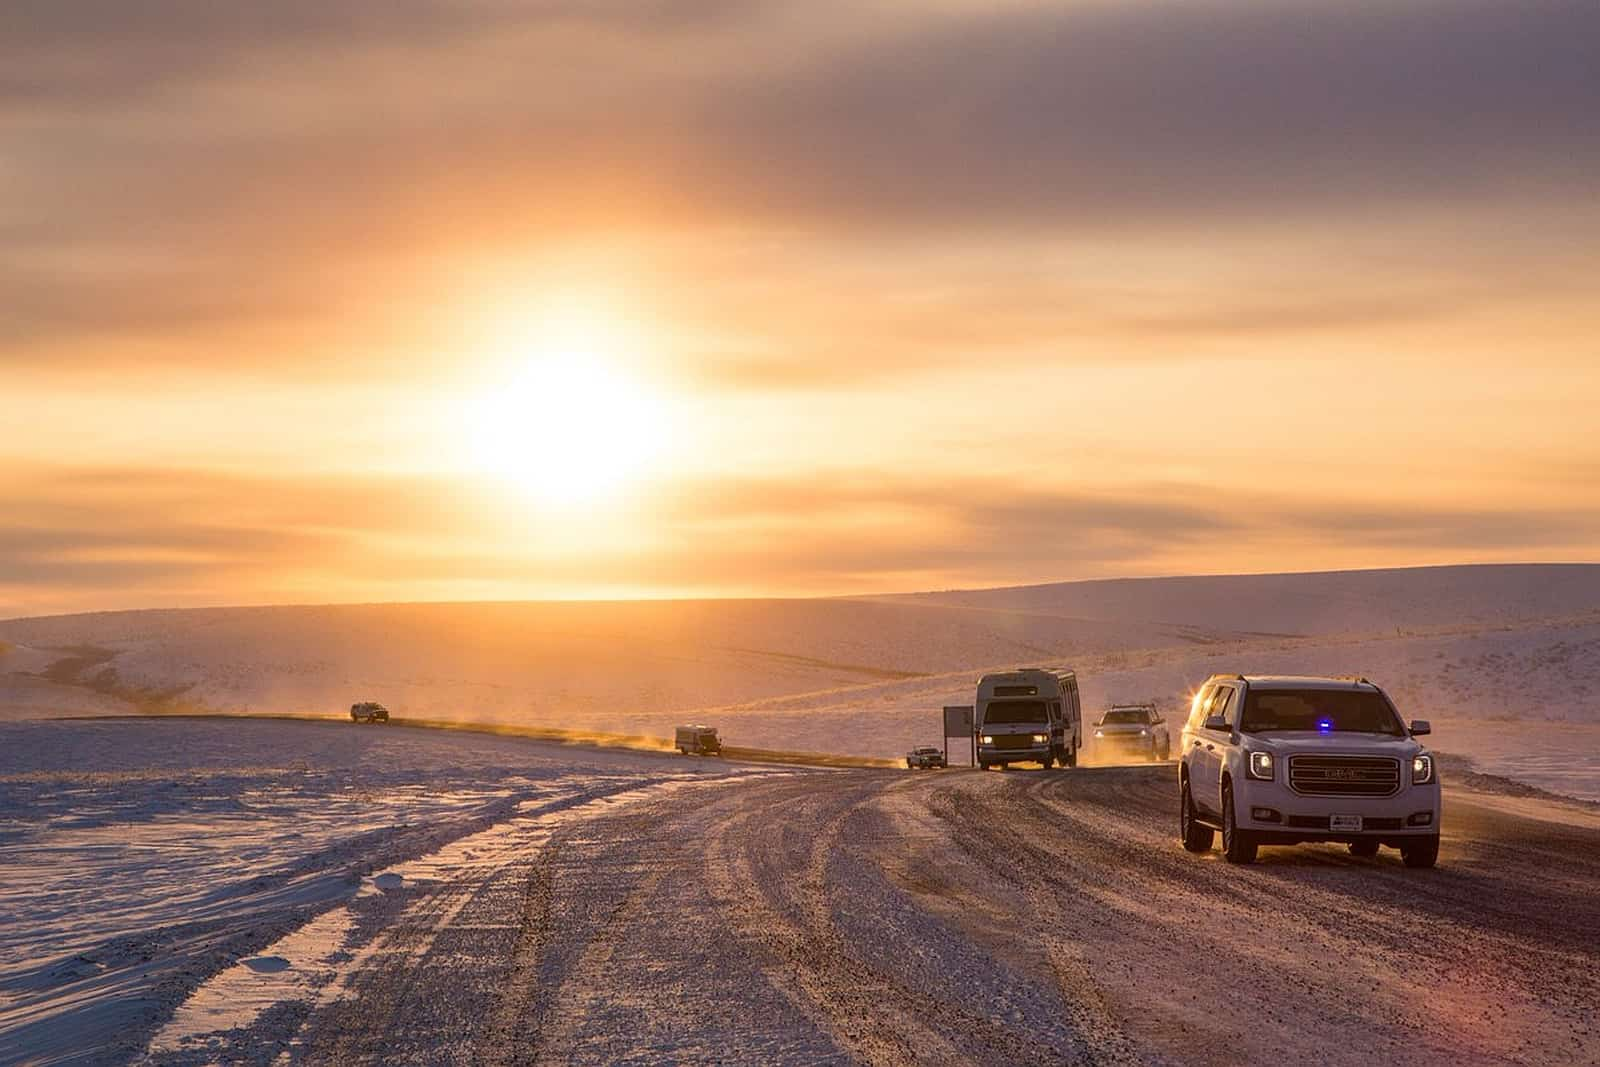 Lange erwartet ist der Inuvik Tuktoyaktuk Highway (ITH) seit November 2017 in Betrieb. Foto Government of Northwest Territories